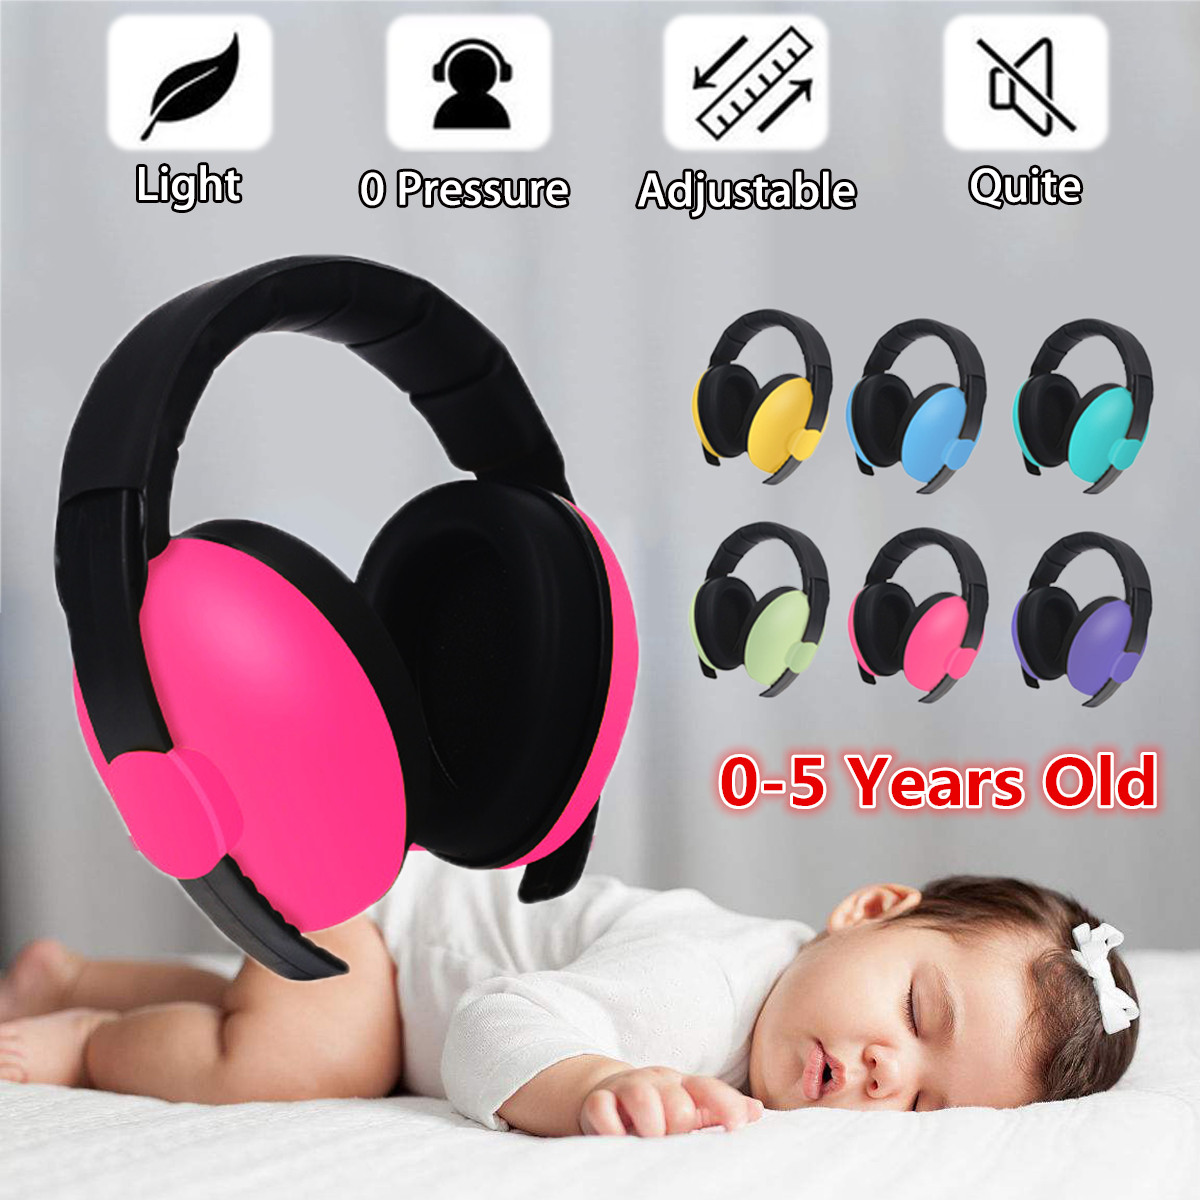 1 pcs Adjustable Baby Earmuffs Hearing Protection Ear Defenders Noise Reduction Safety for 3 Months-5 Years Old Child Baby ear muffs for sleeping